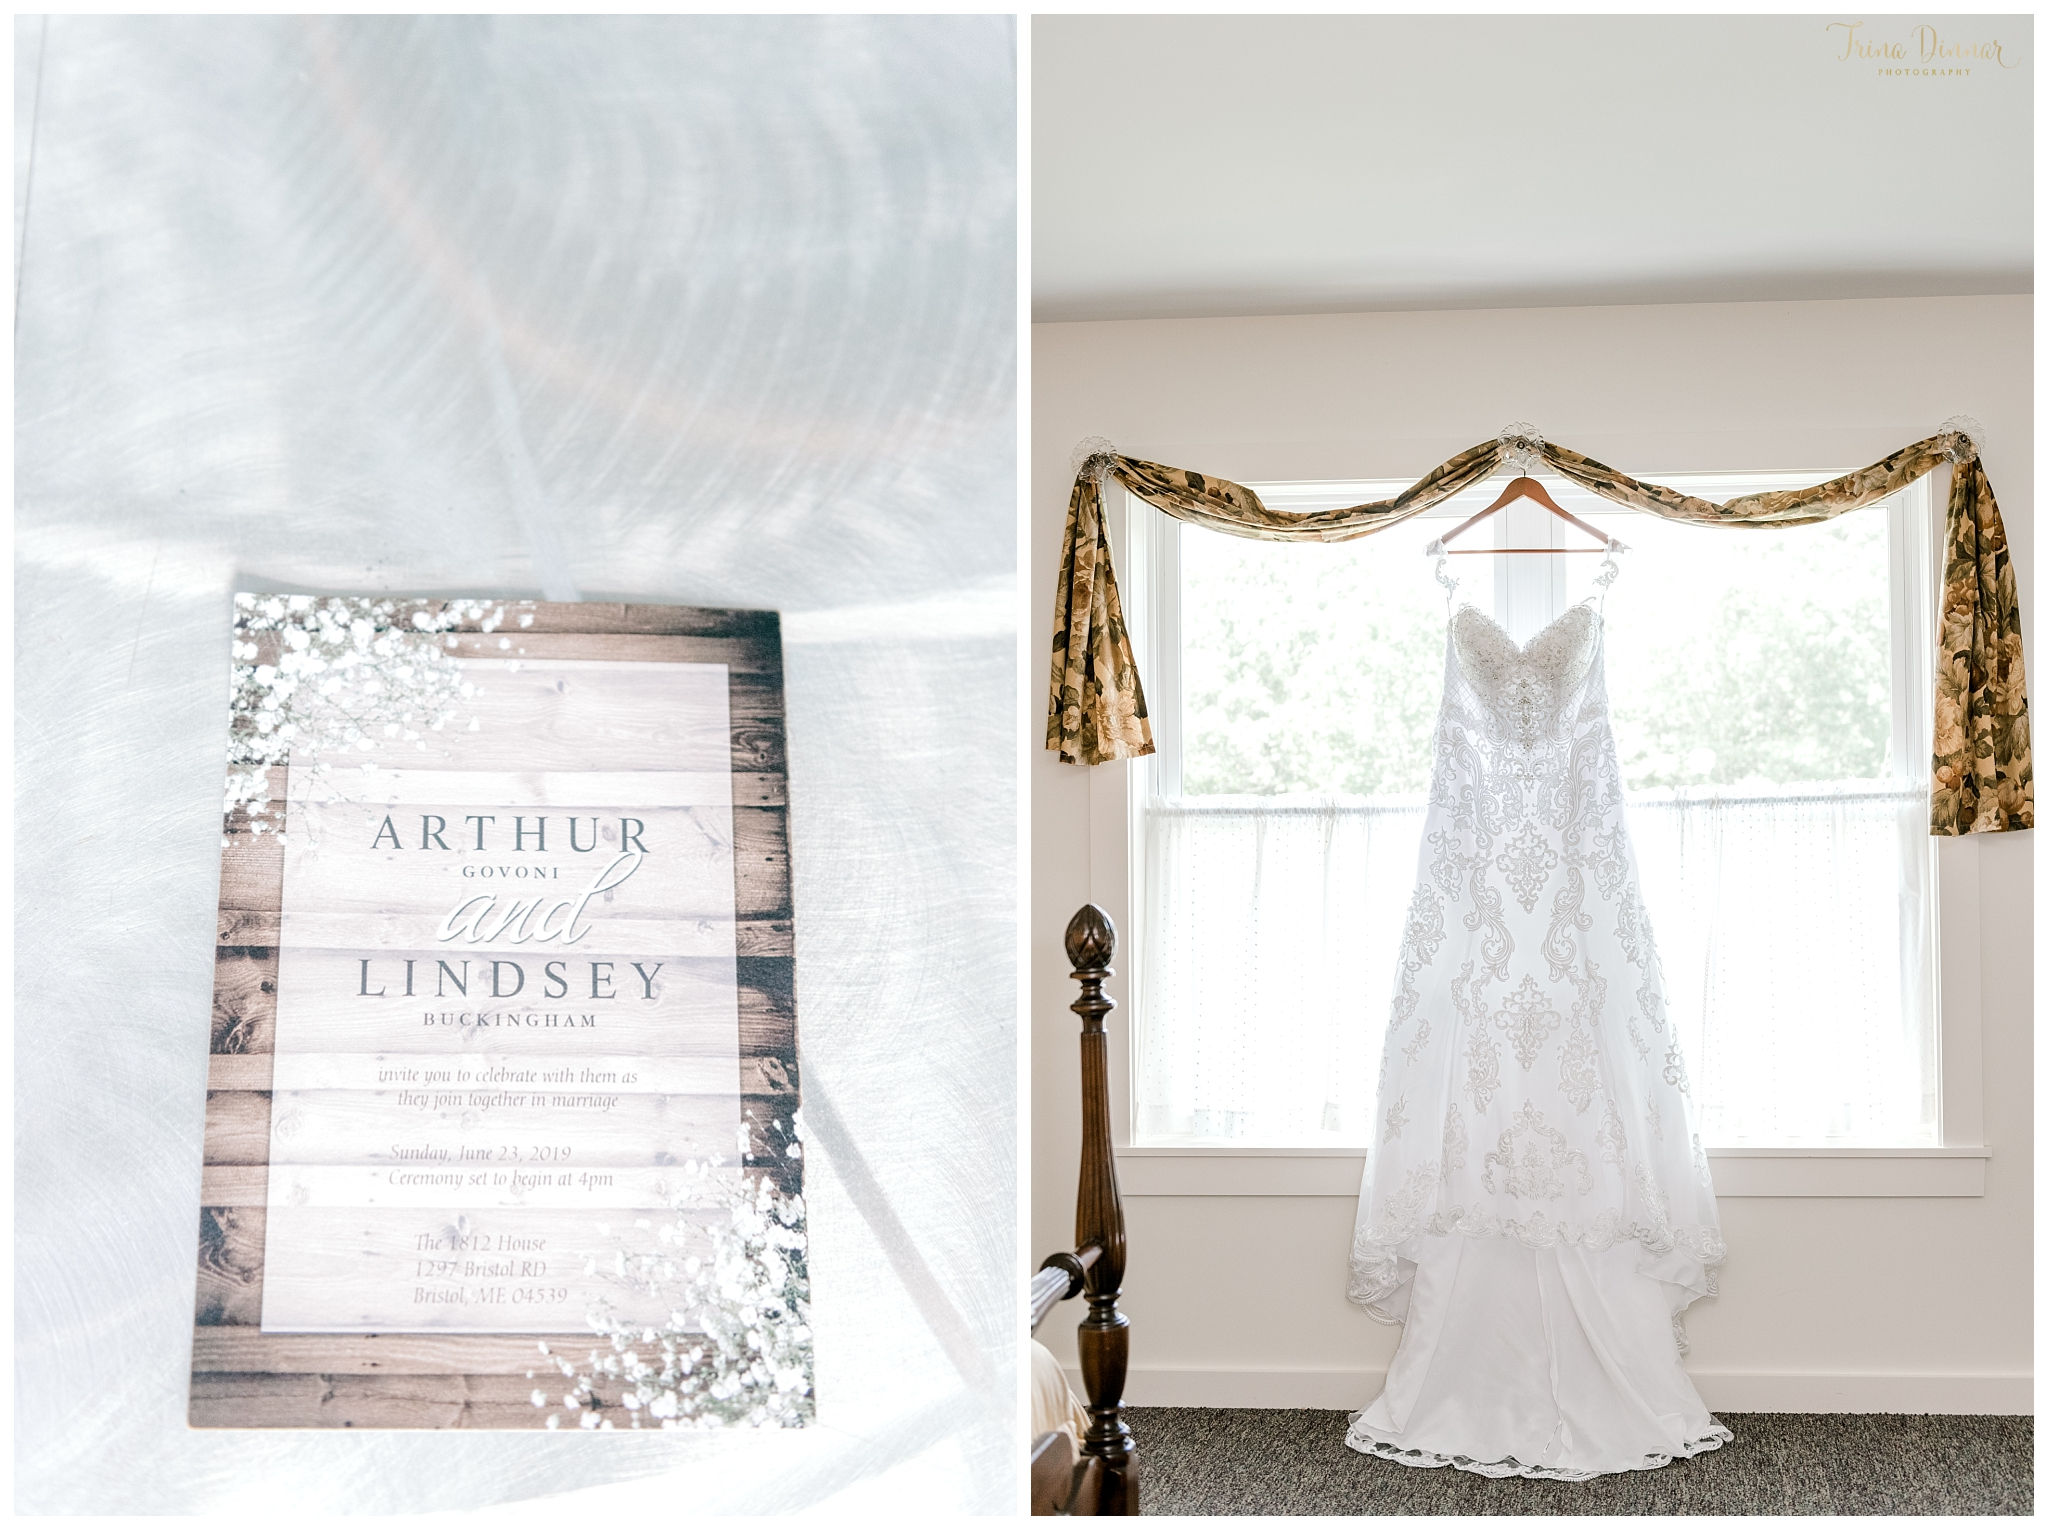 Wedding Invitation and Bridal Gown